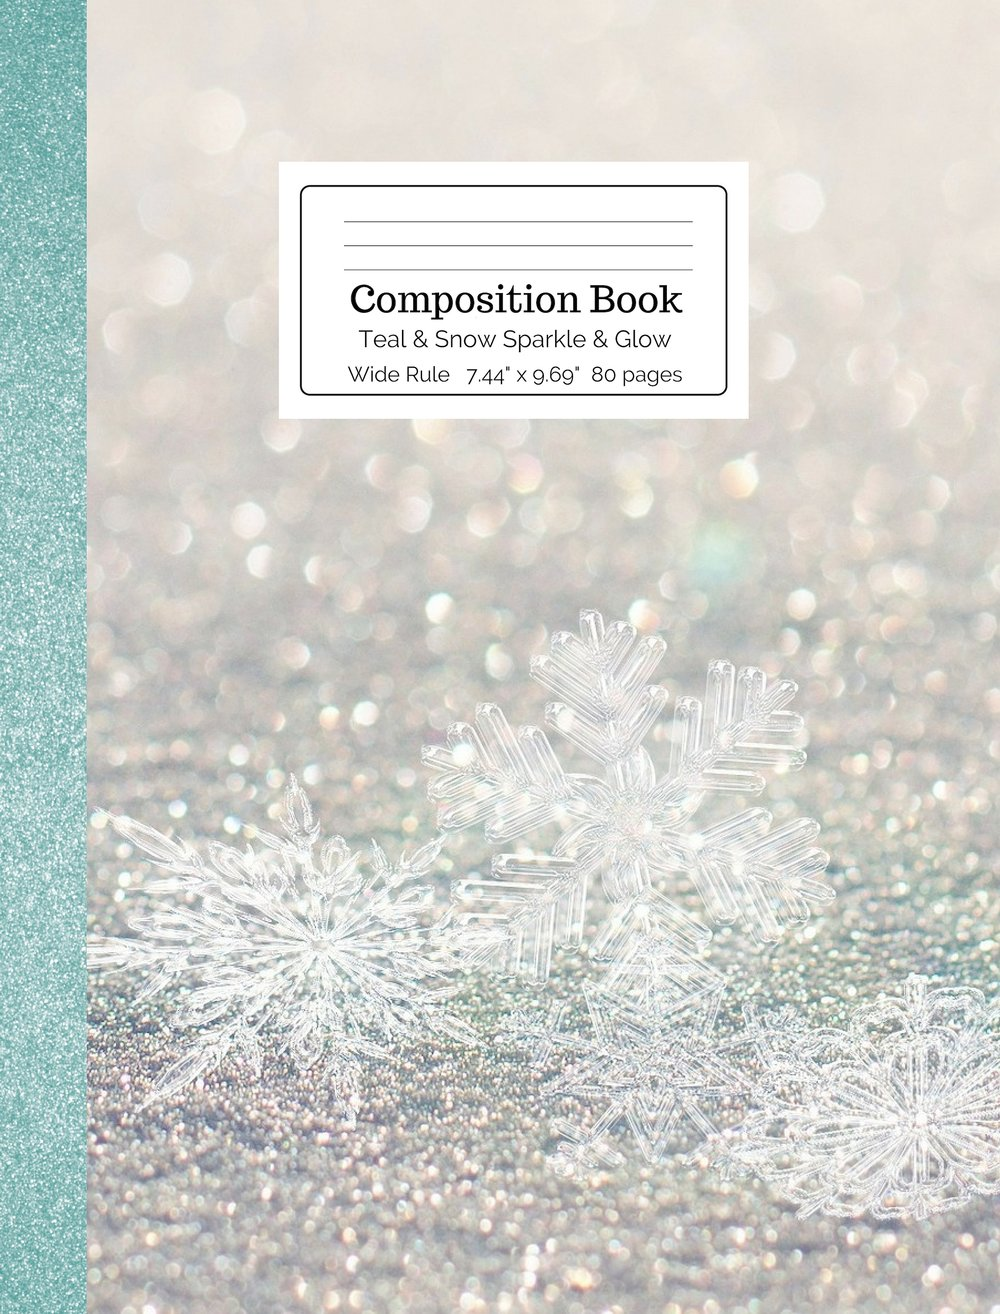 Teal & Snow Sparkle & Glow Composition Book